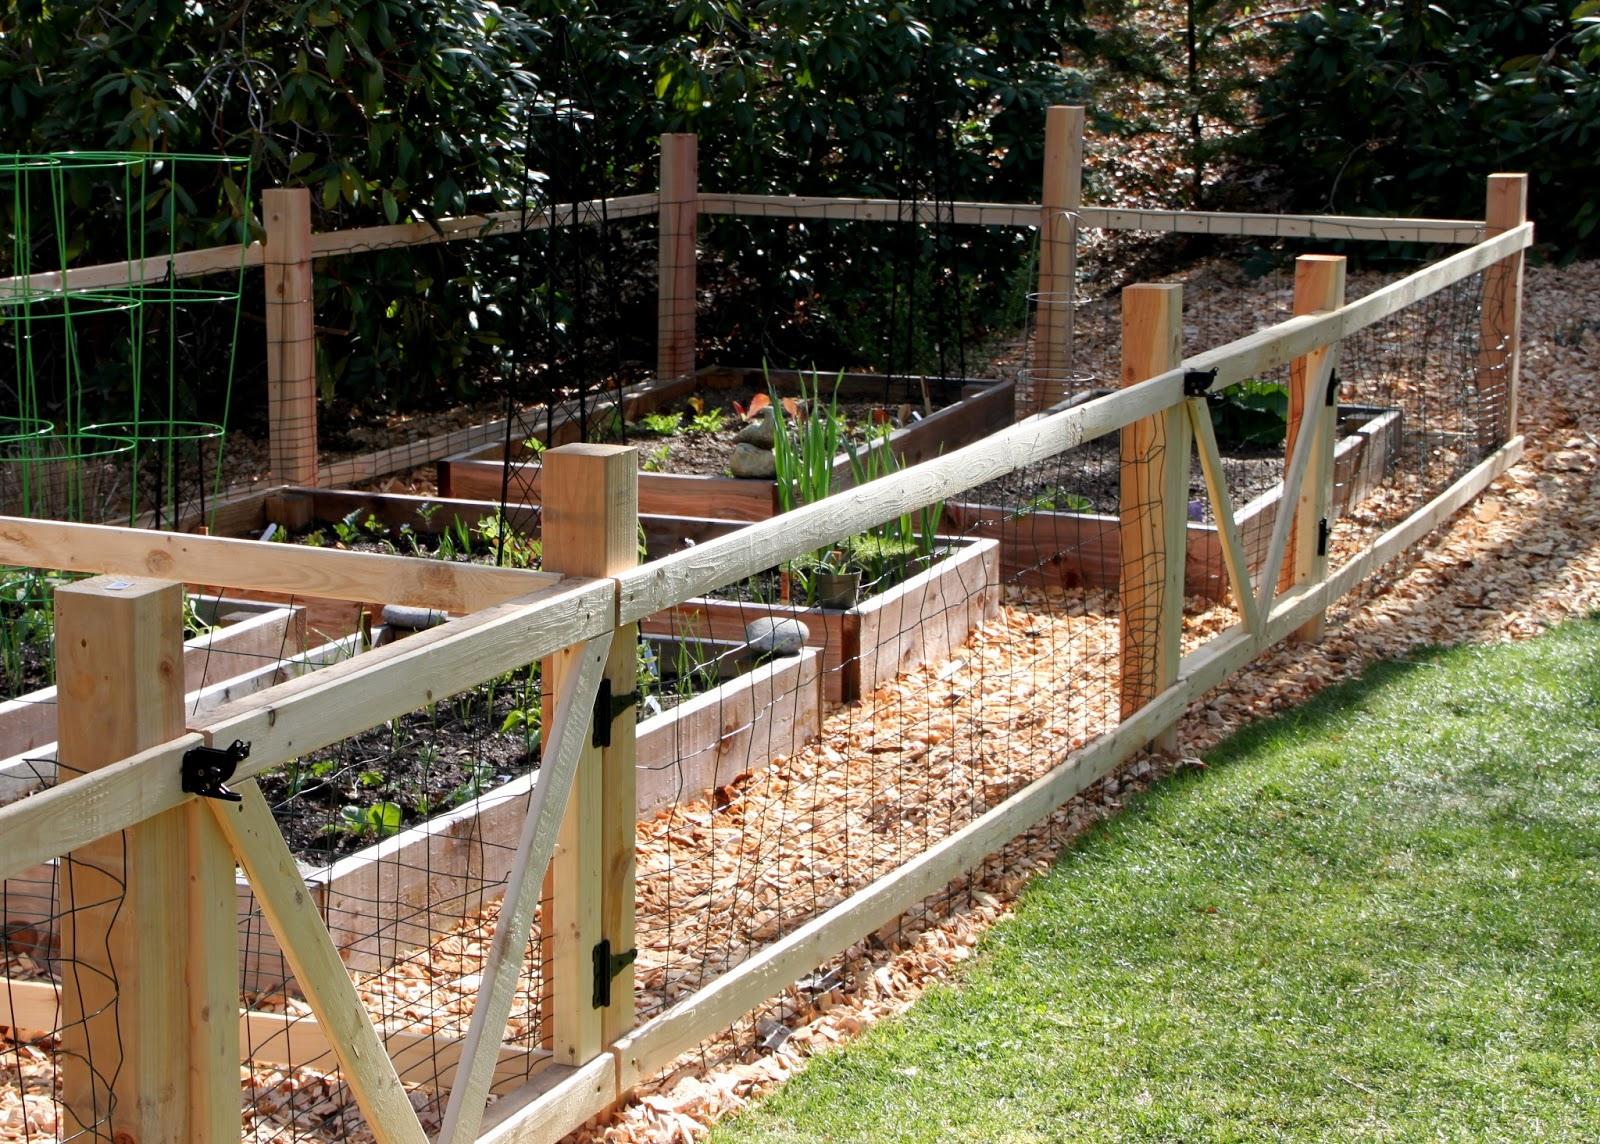 Building garden fence boxes gardening rustic red cedar enlivens a how to build a garden with chicken wire fence subulussalam baanklon Gallery